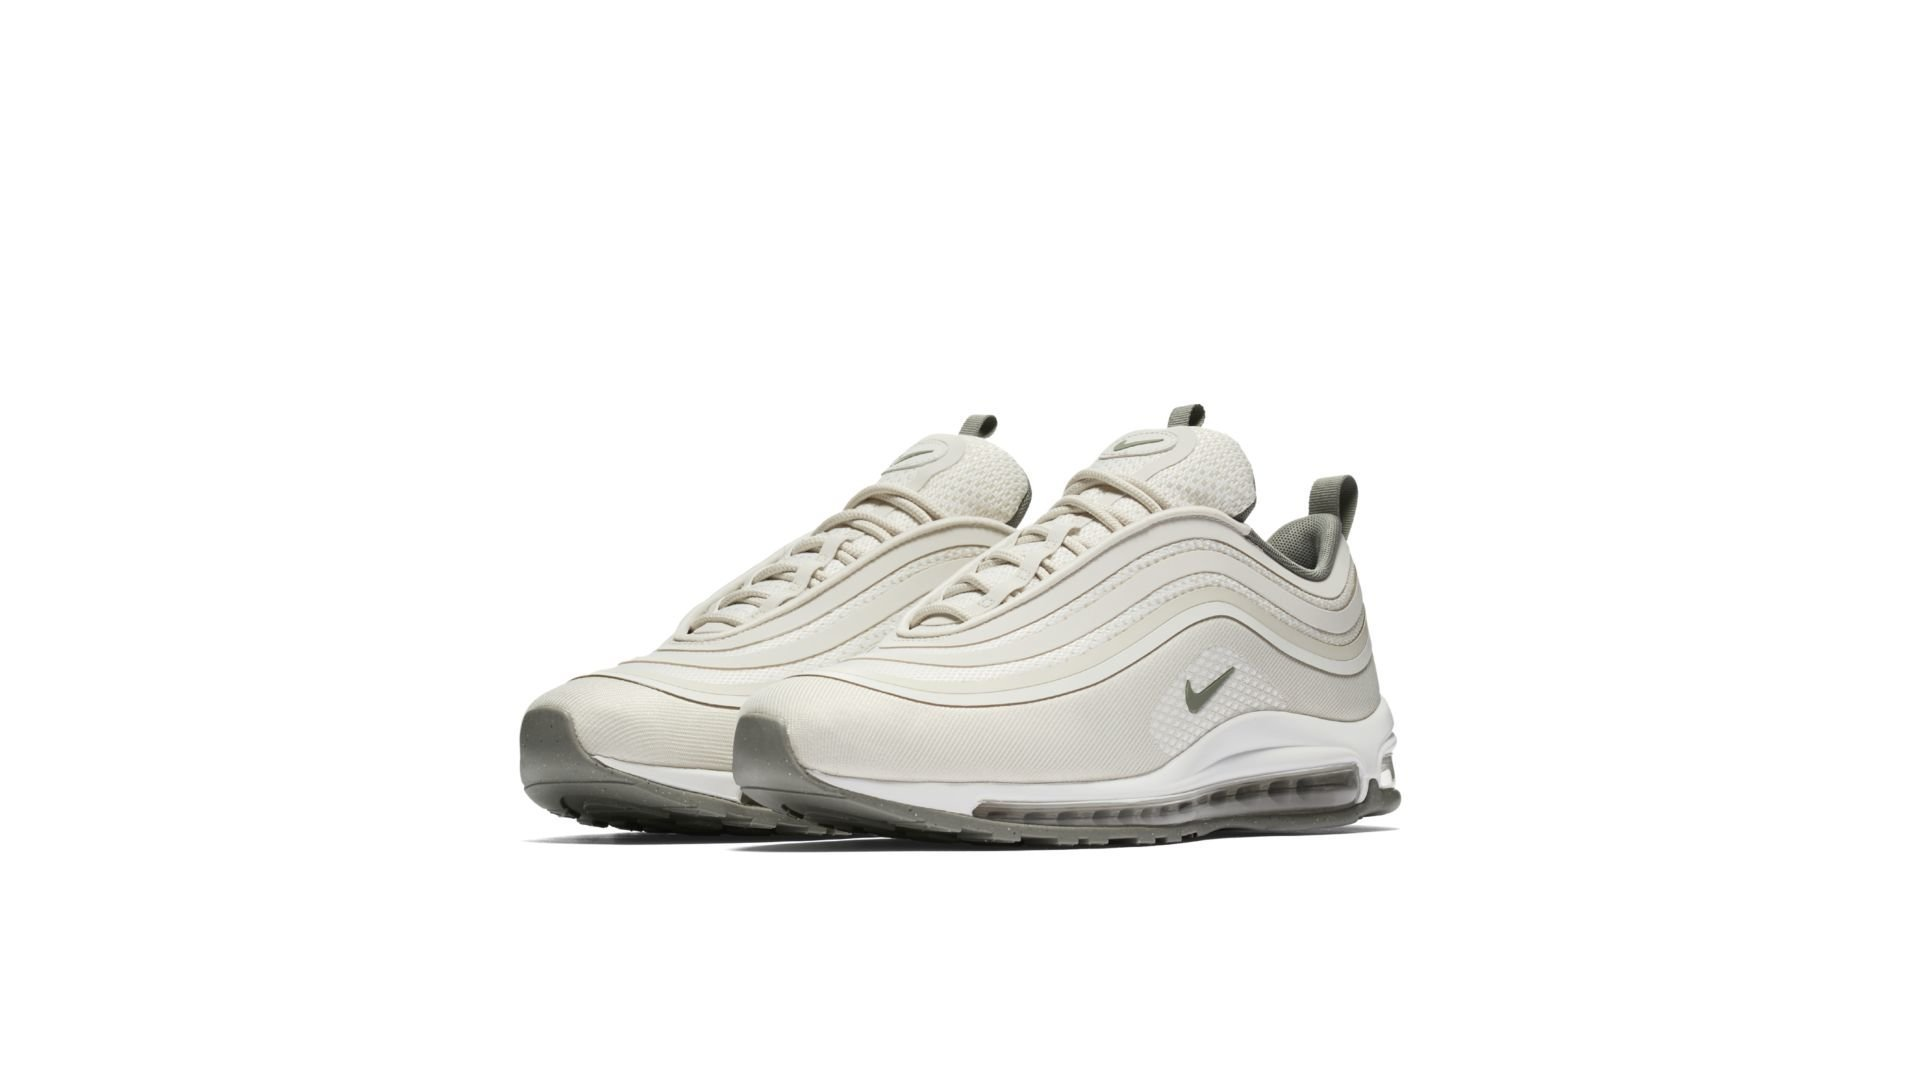 Nike Air Max 97 Ultra 17 Light Orewood Brown (918356-100)